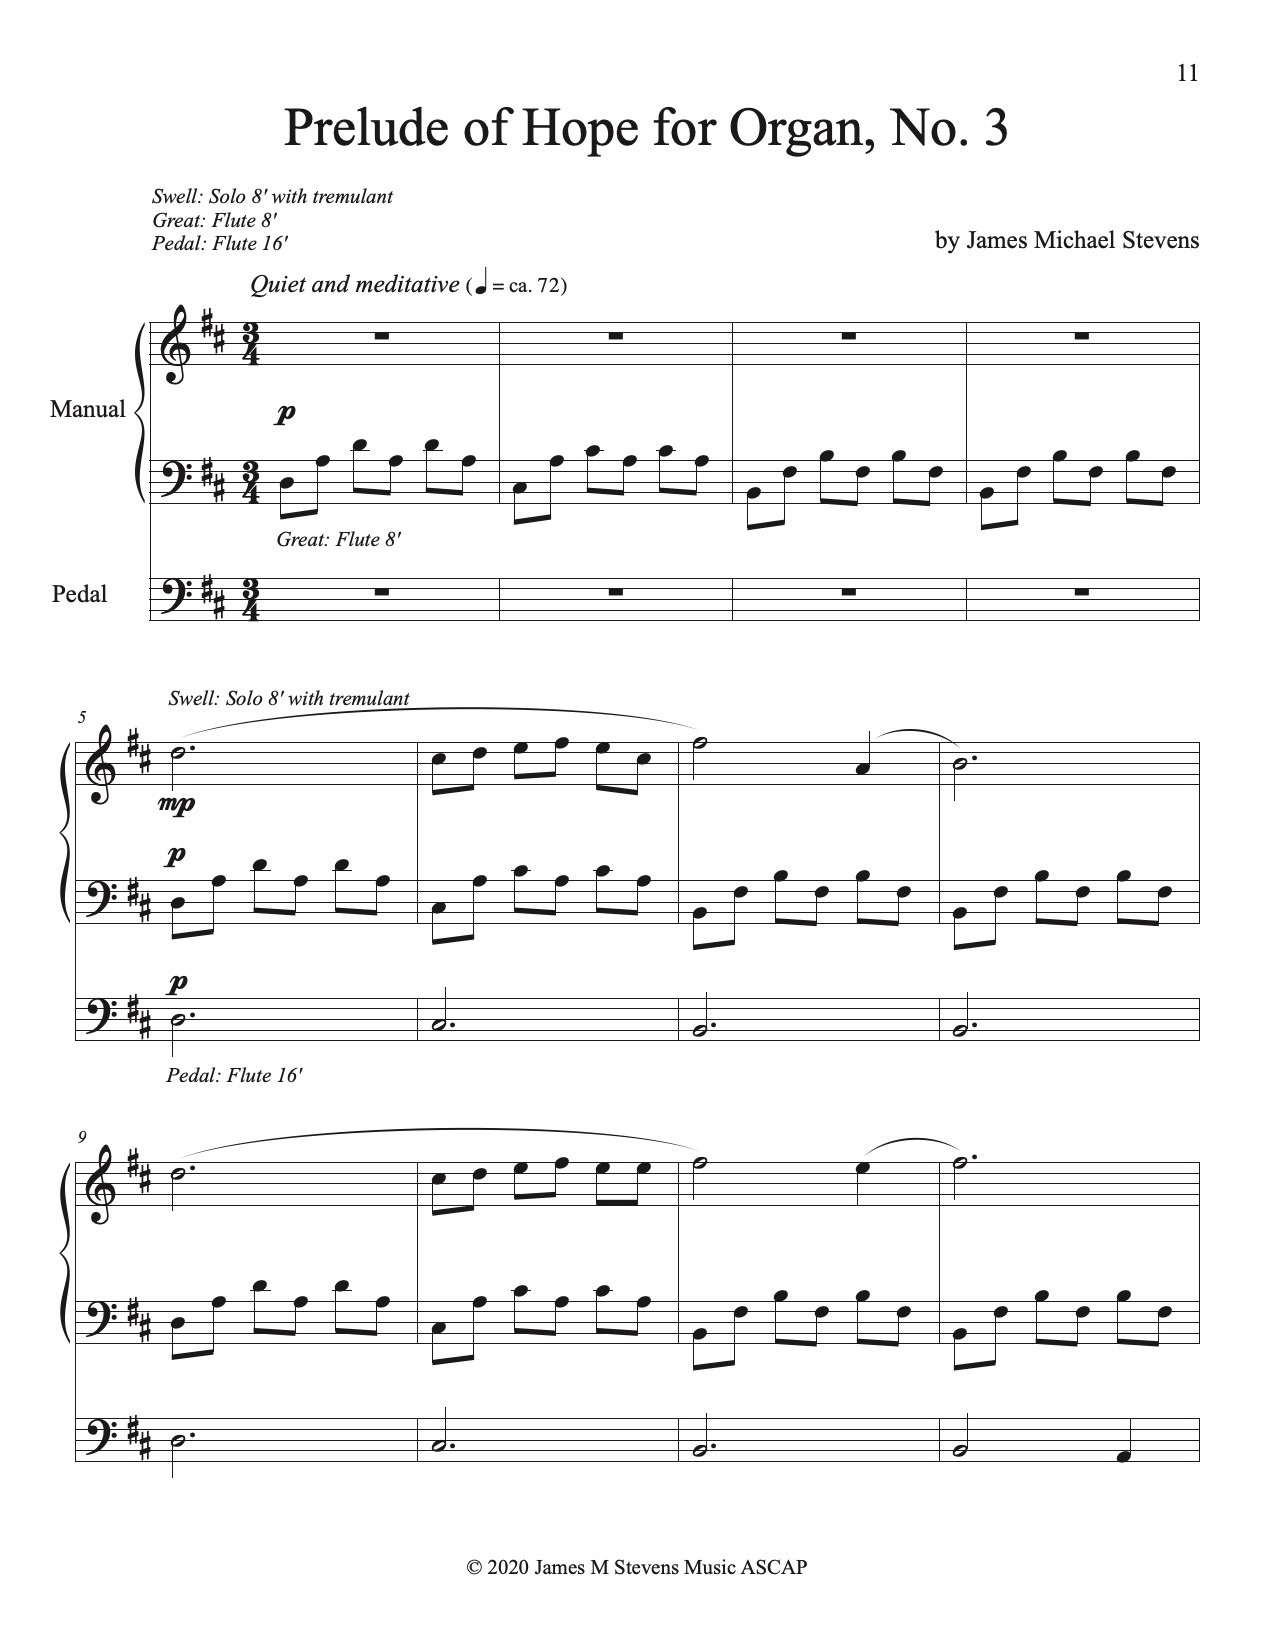 Preludes of Hope for Organ, Nos. 1-5